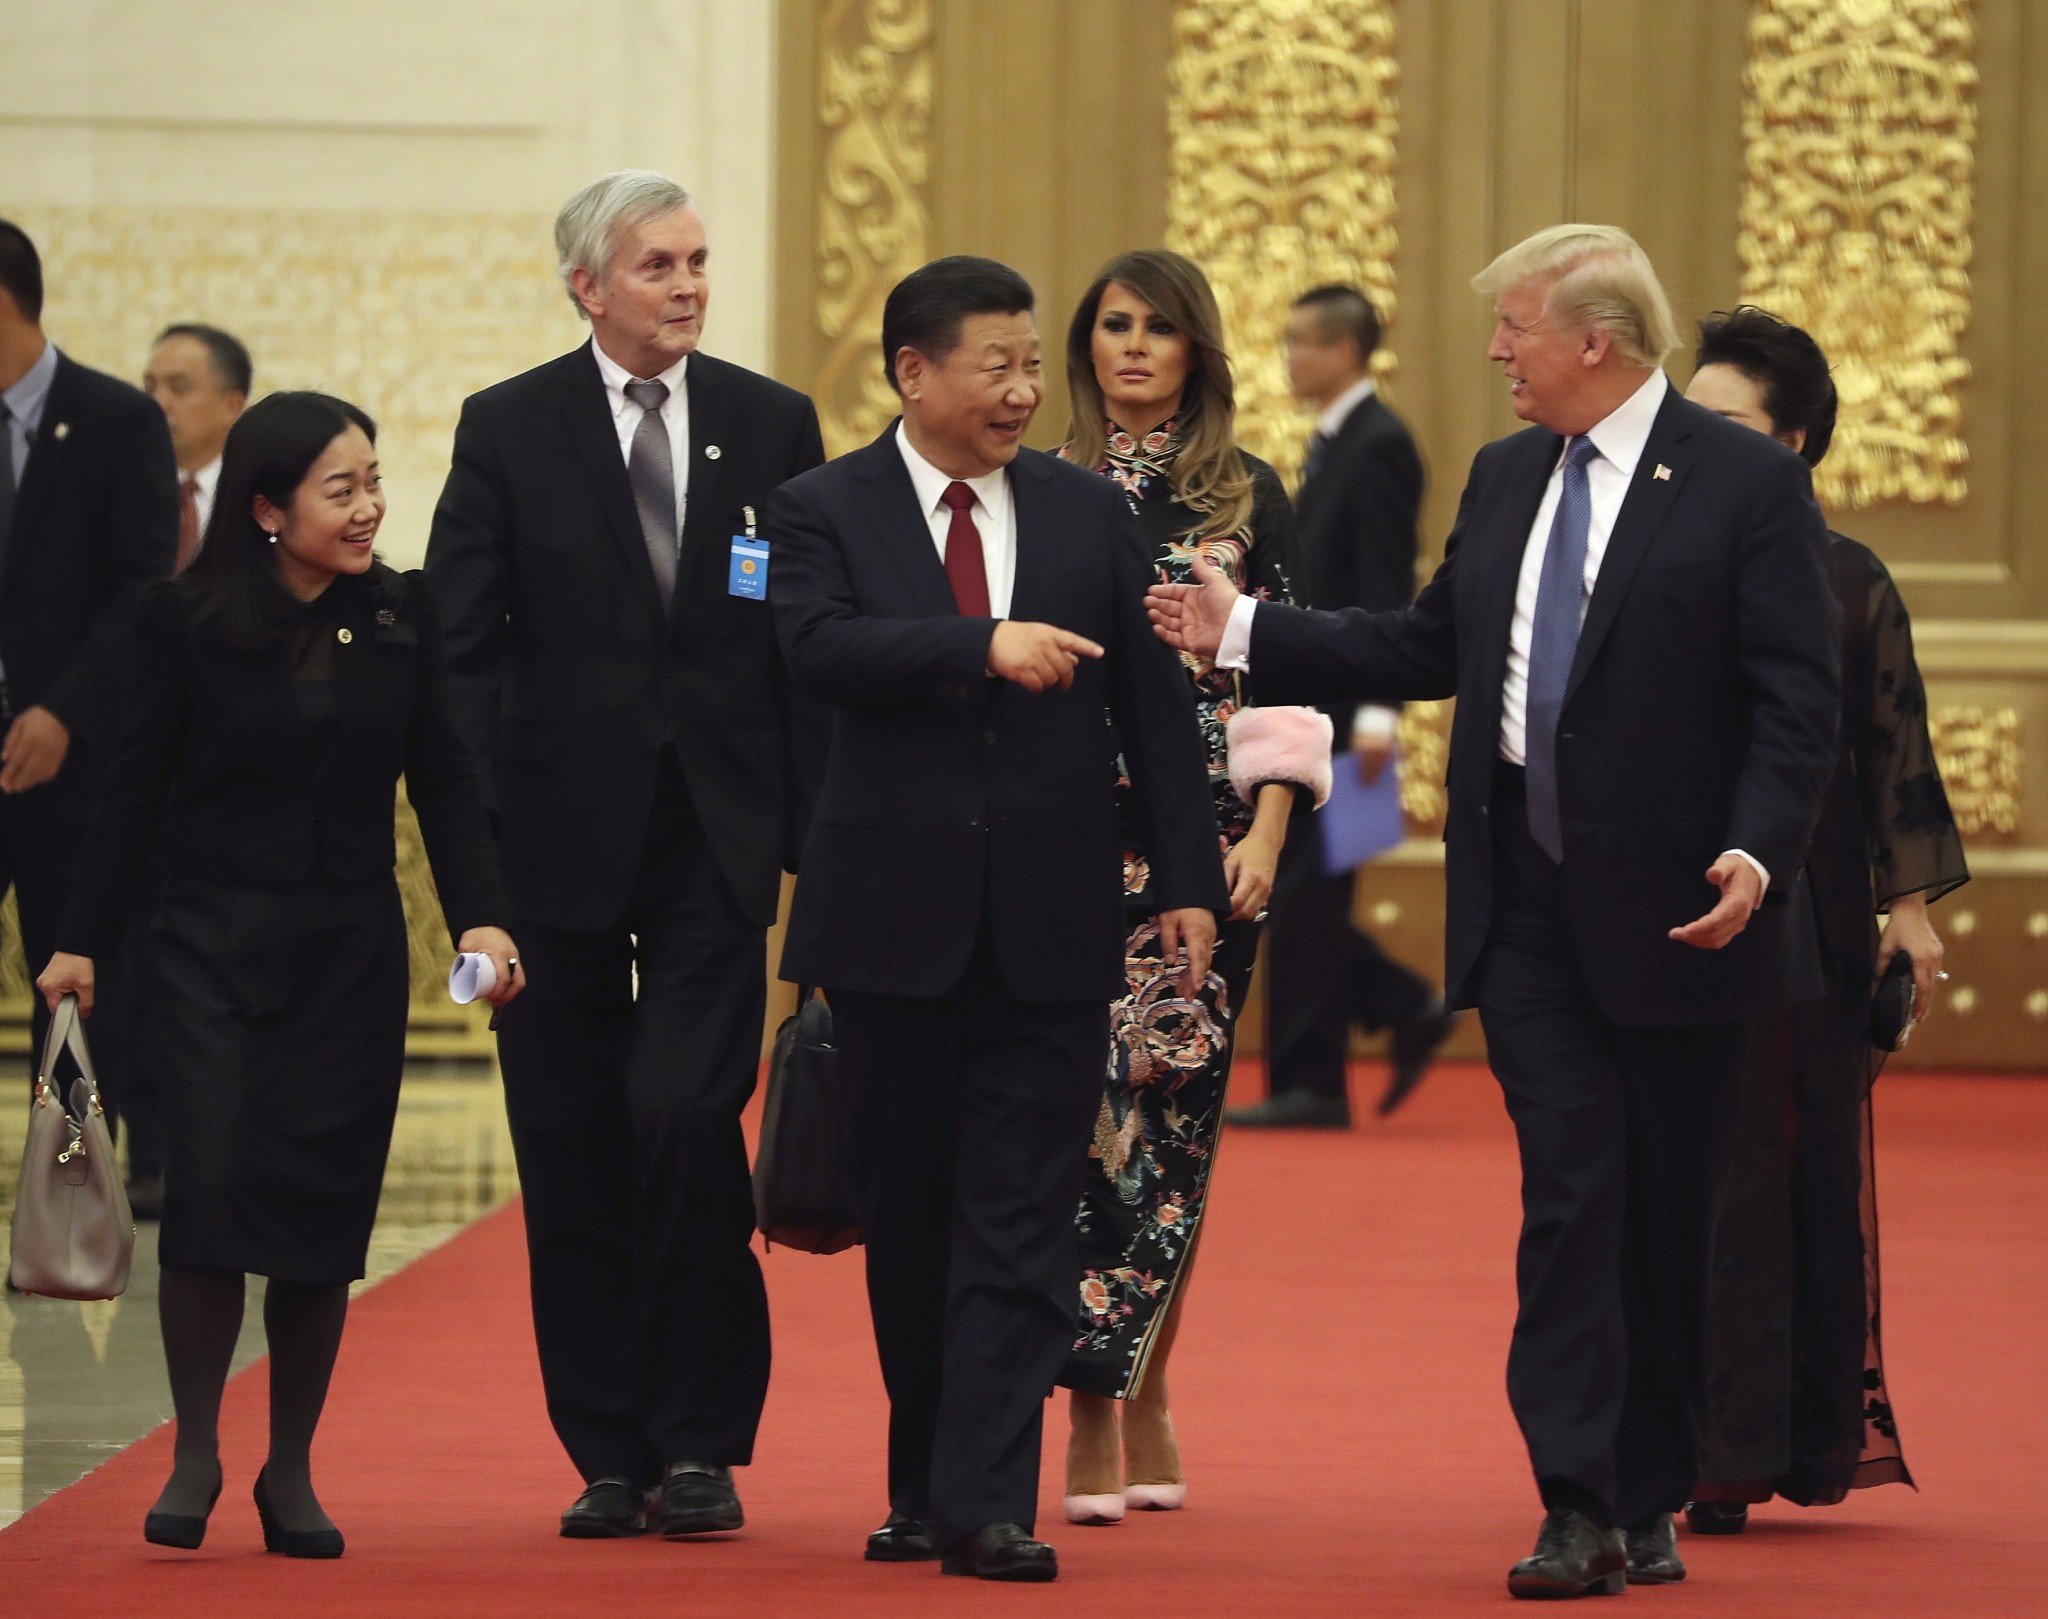 U.S. and Chinese officials 'scuffled over nuclear football' during Trump Beijing visit